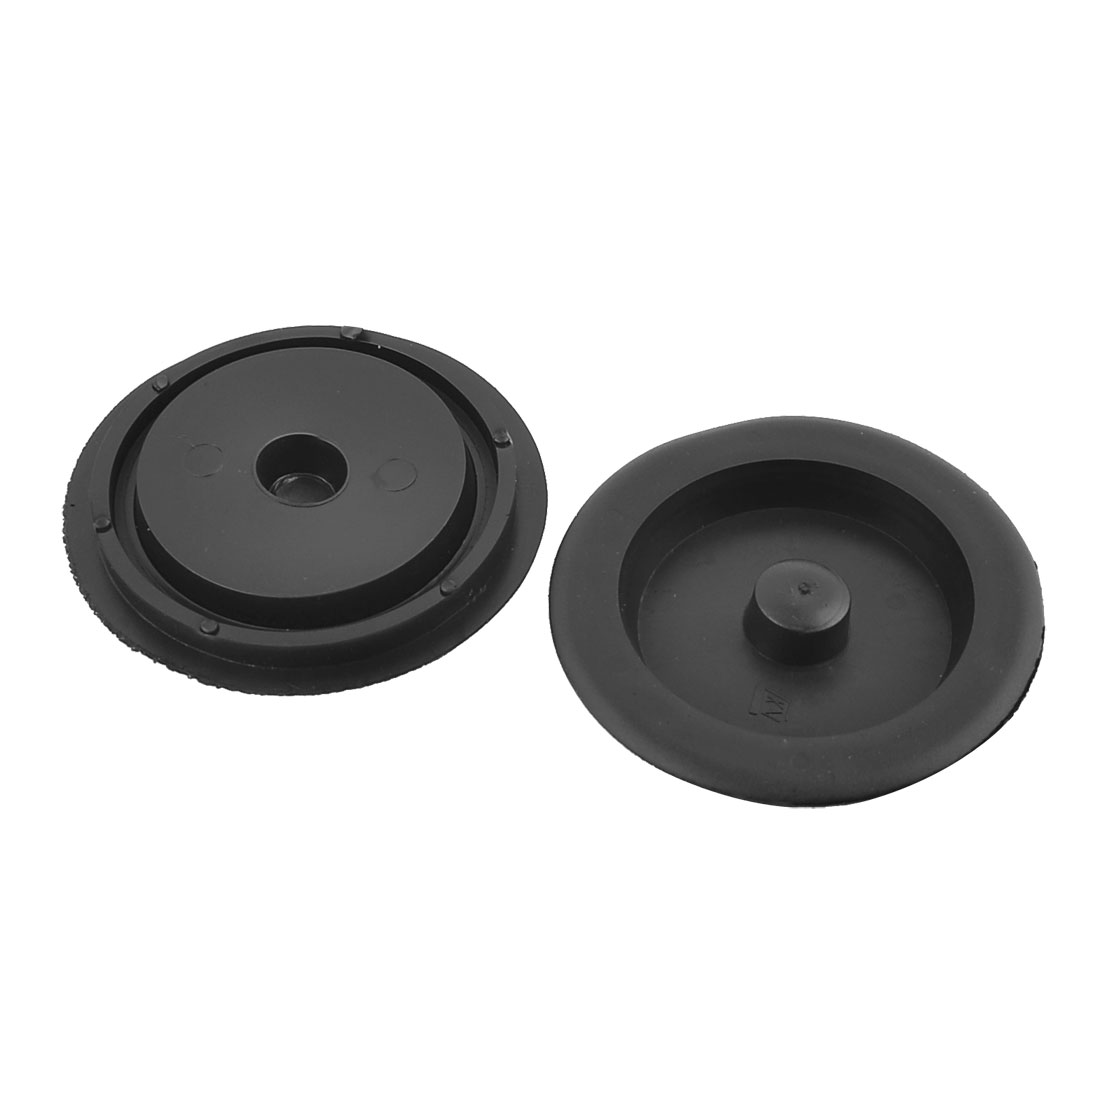 "Kitchen Black Plastic Garbage Disposal Sink Stopper Flange 3.5""m Dia 2 Pcs"